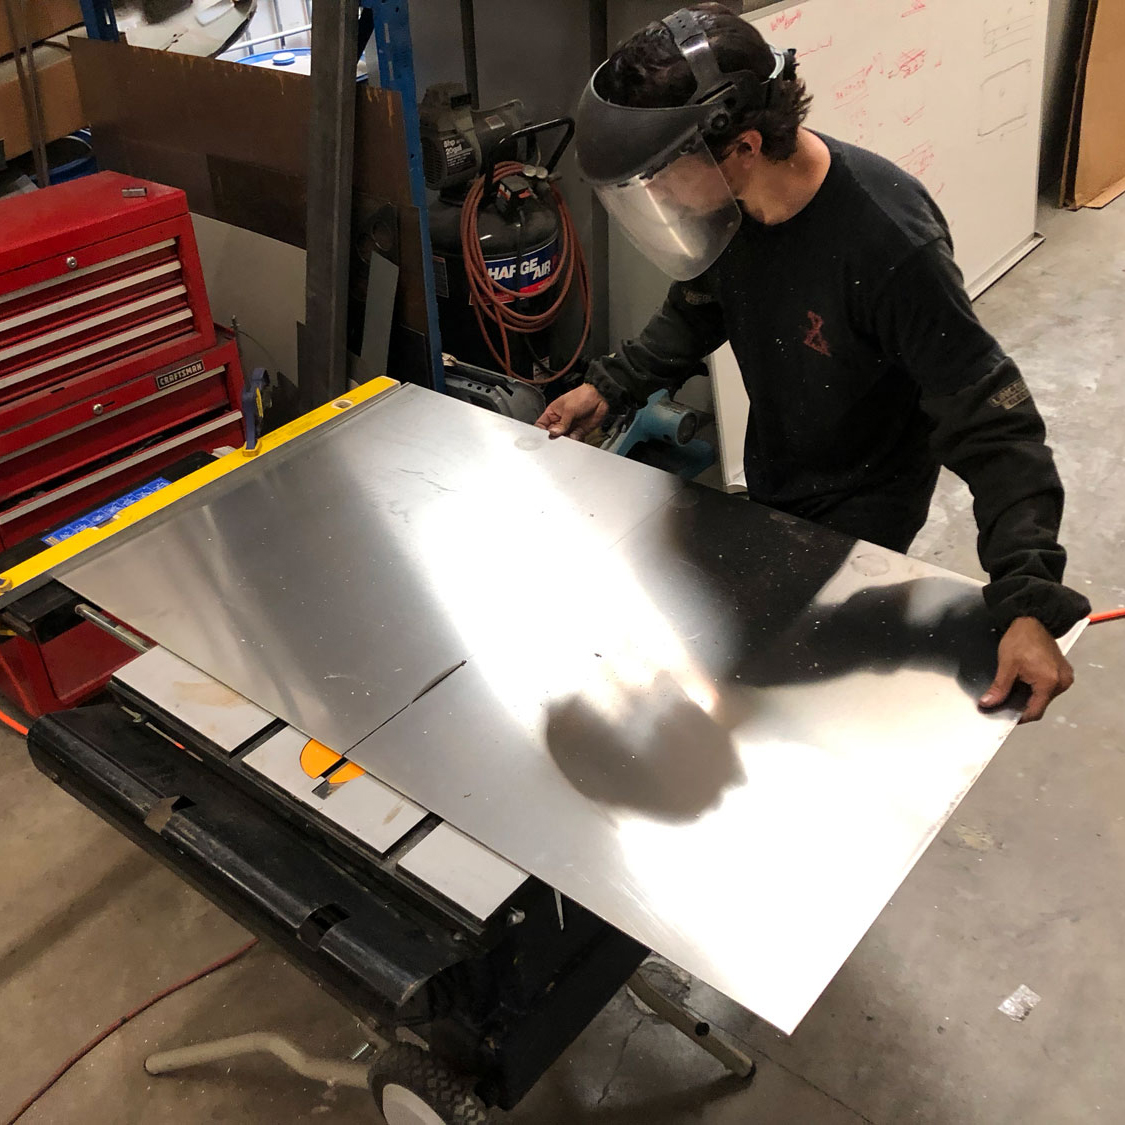 Aluminum cuts smooth and easy on a tablesaw as f it were a piece of thin plywood.